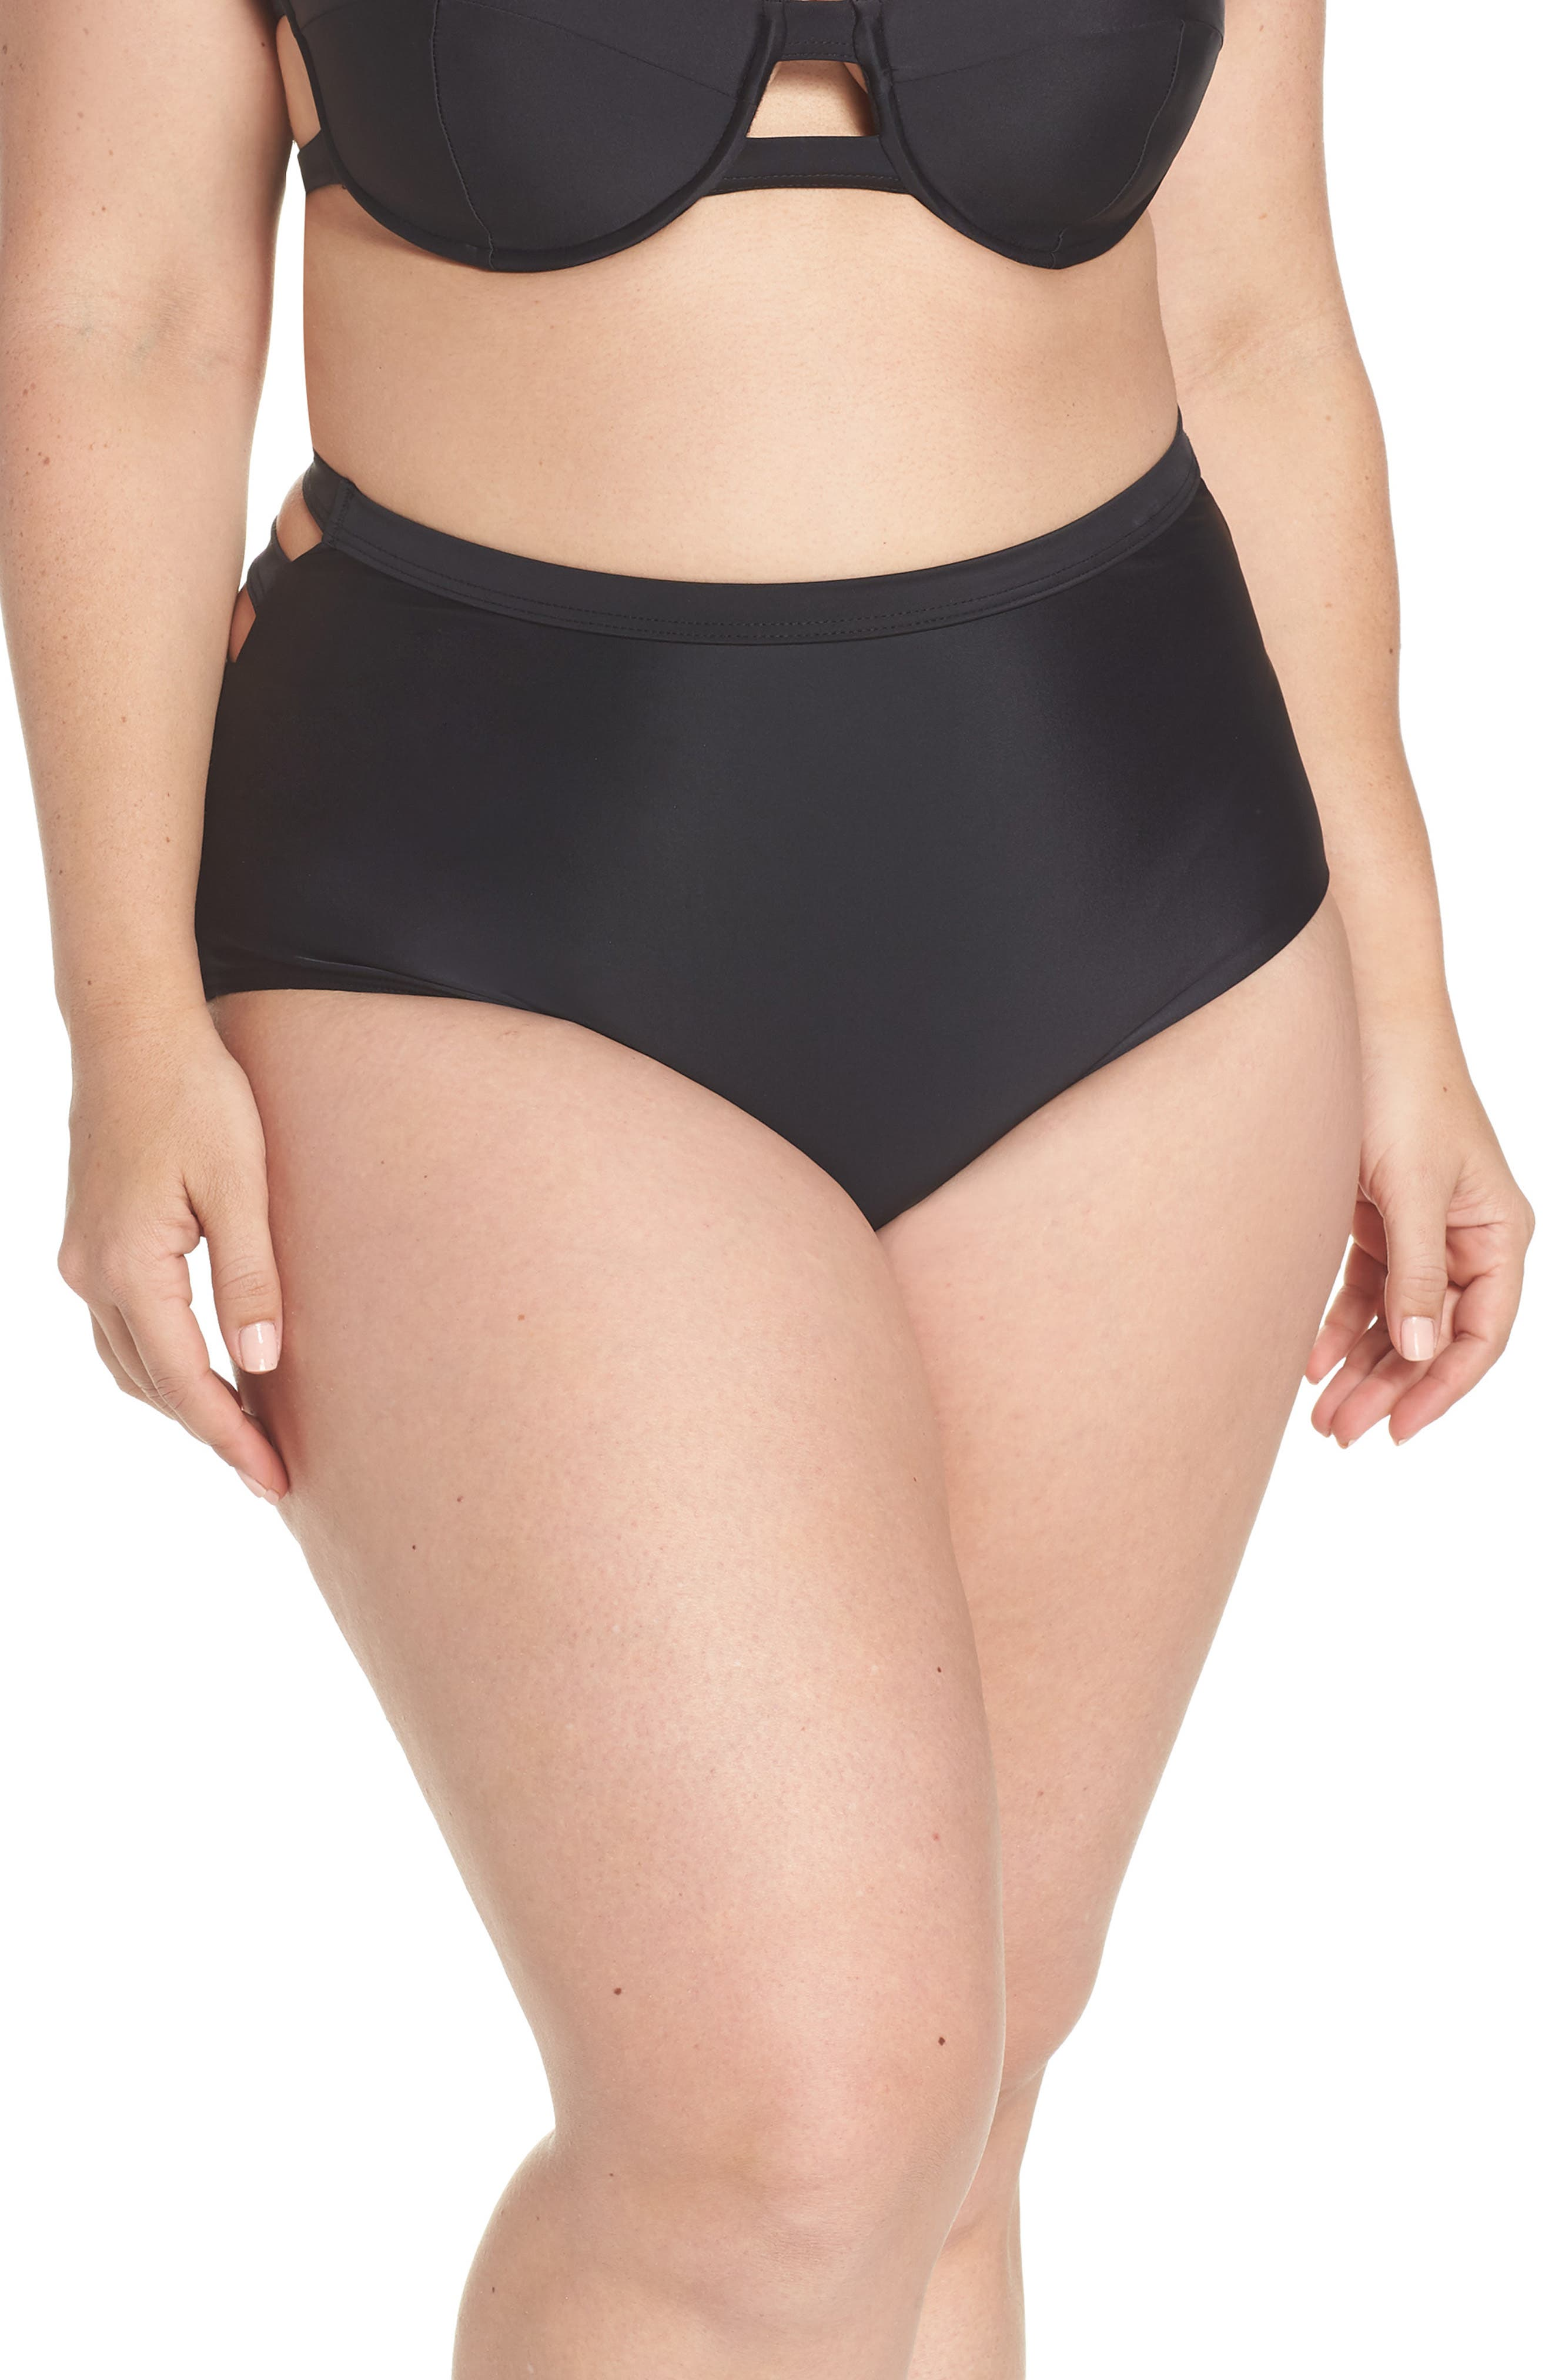 Bouloux II High Waist Bikini Bottoms,                             Alternate thumbnail 2, color,                             Black